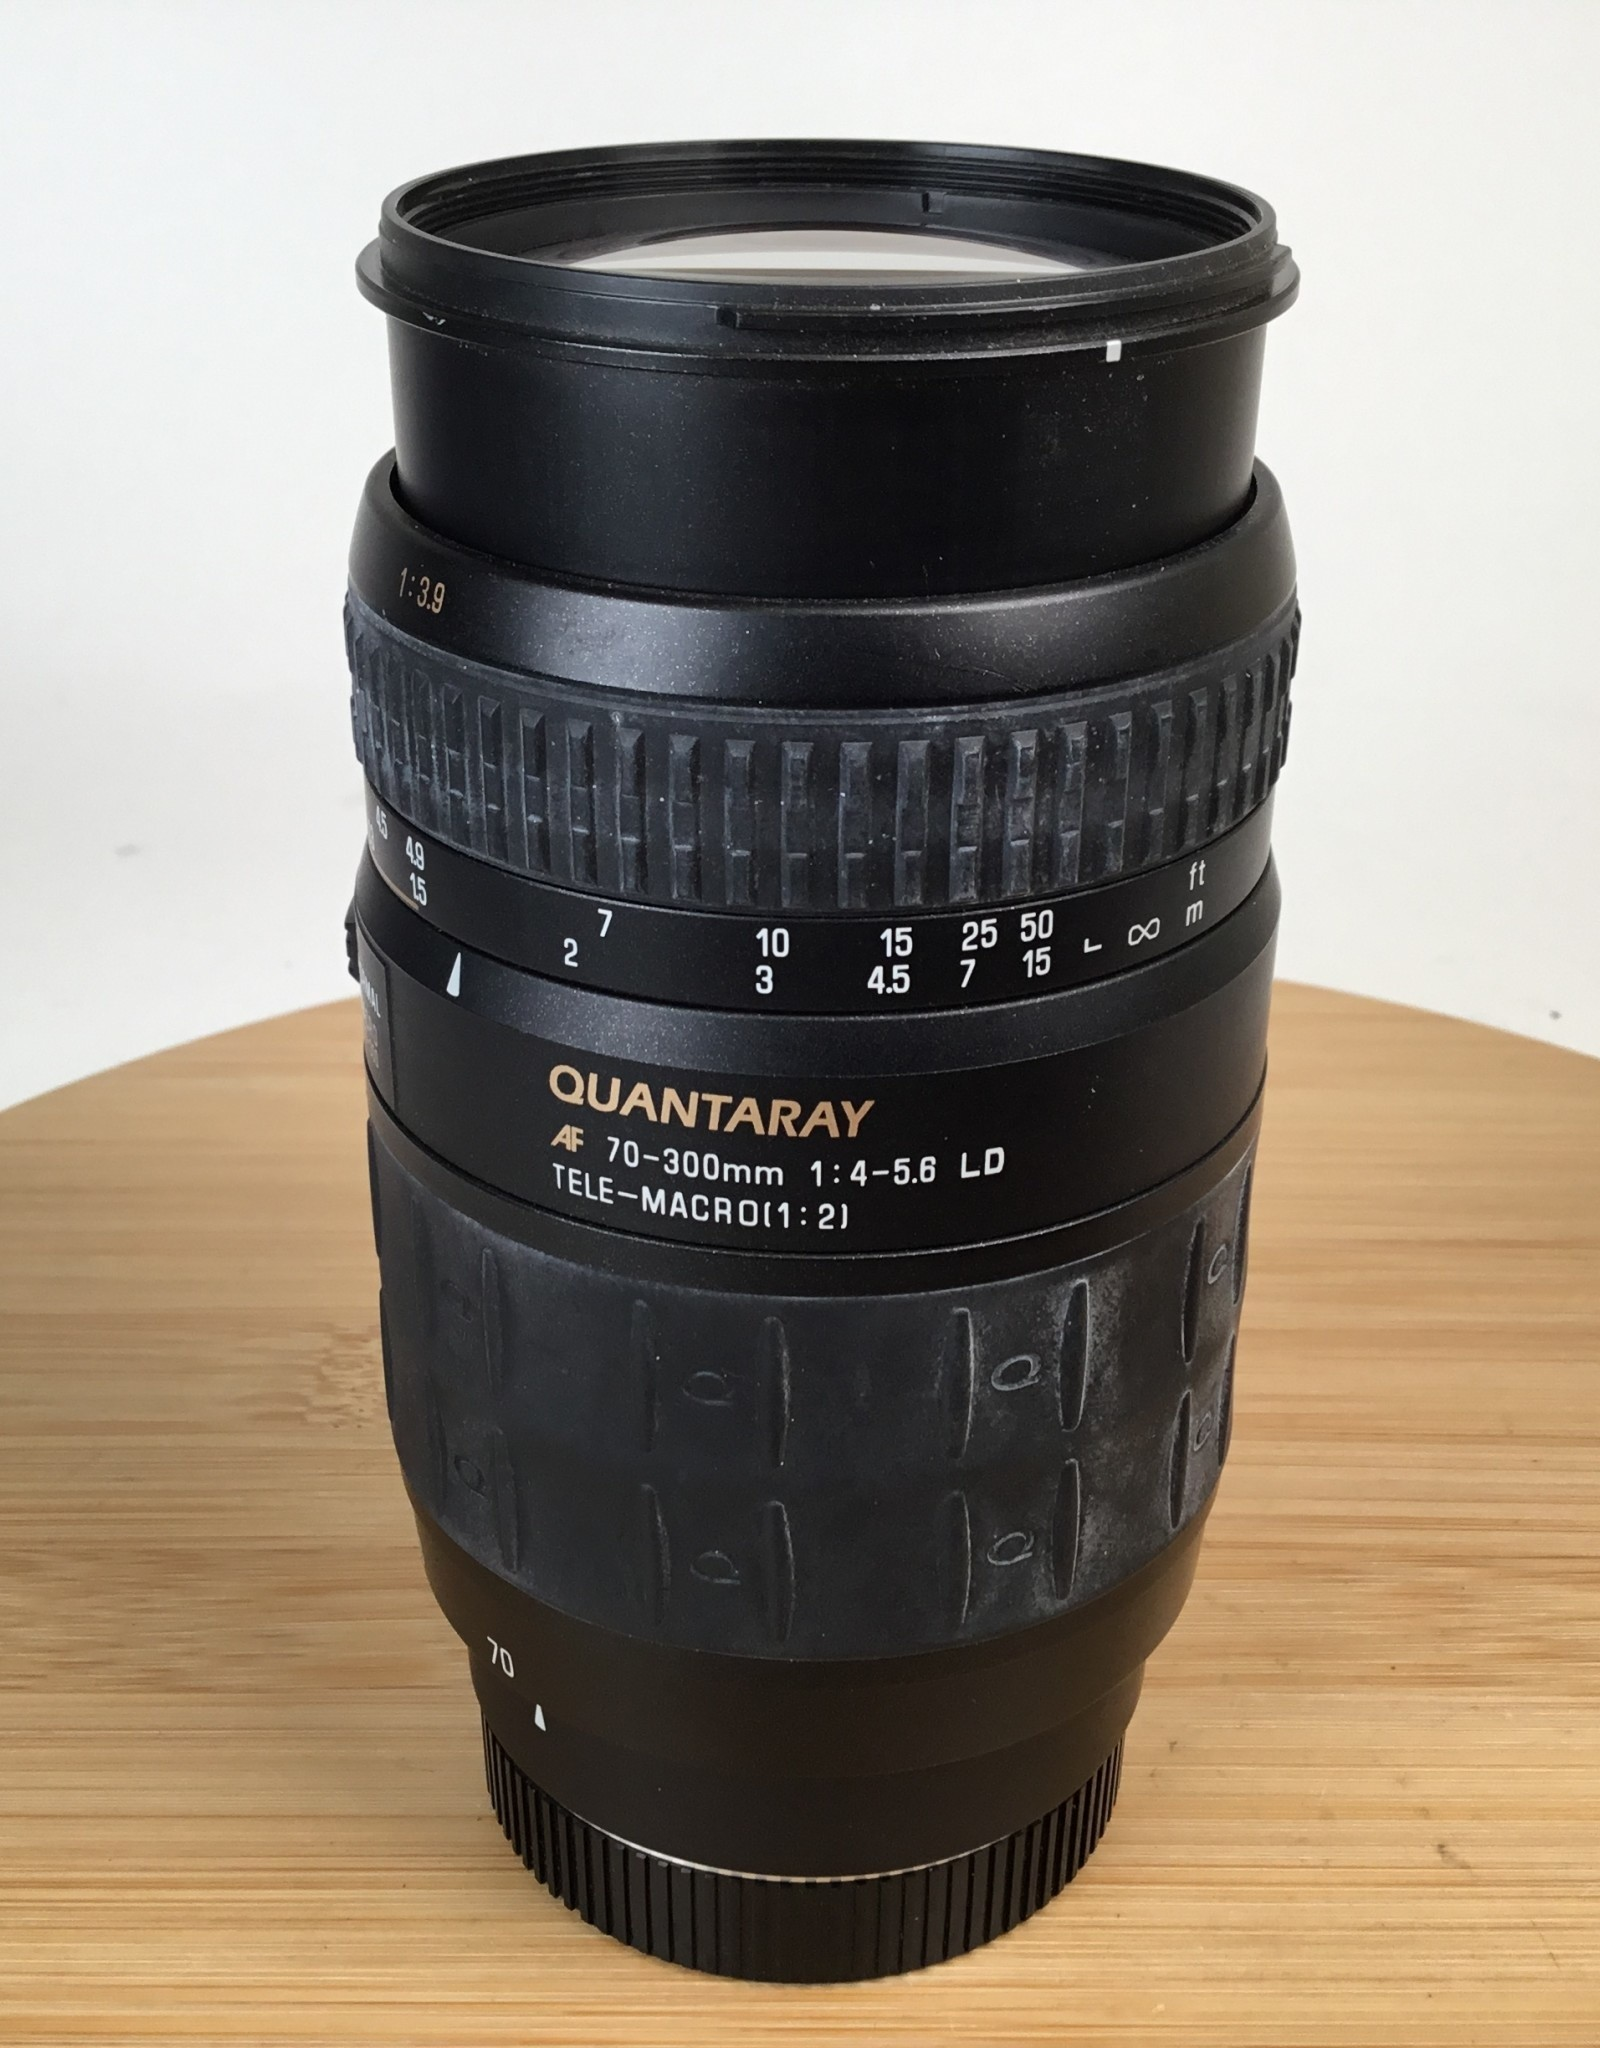 Quantaray 70-300mm f4-5.6 for Minolta Maxxum Used EX